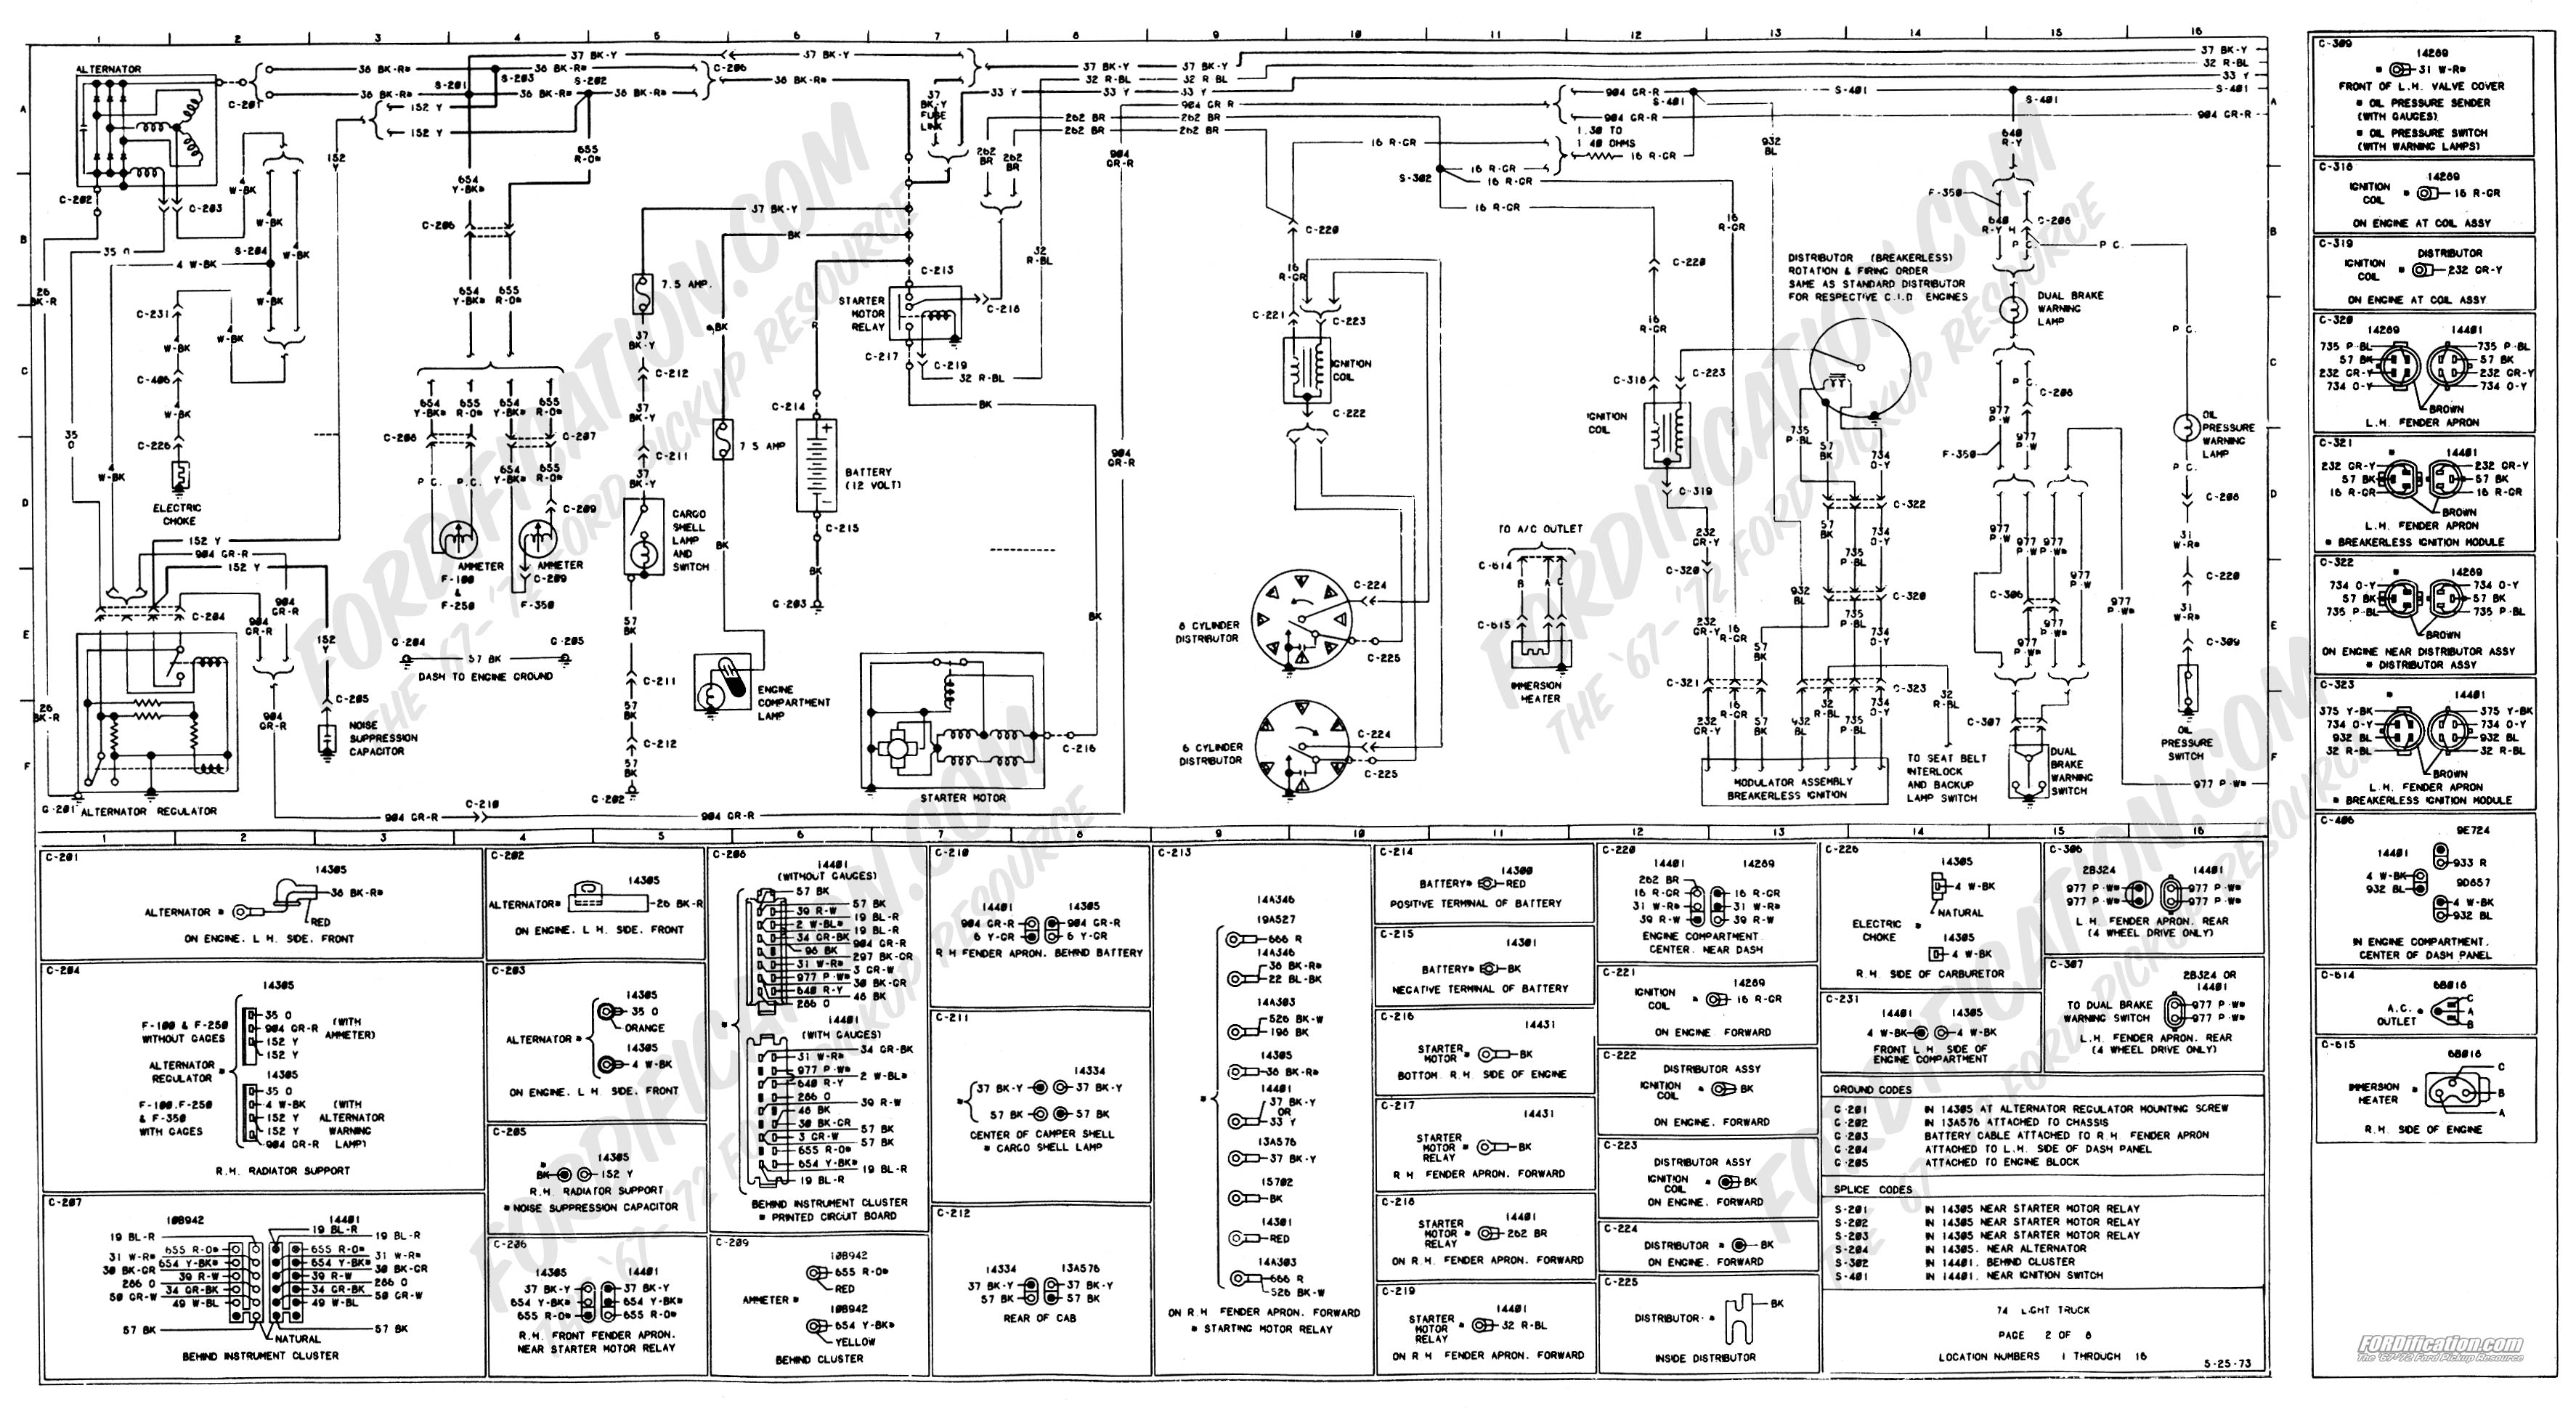 F350 Wiring Schematics Diagram Data 2014 Ford Taurus Truck 2013 1973 1979